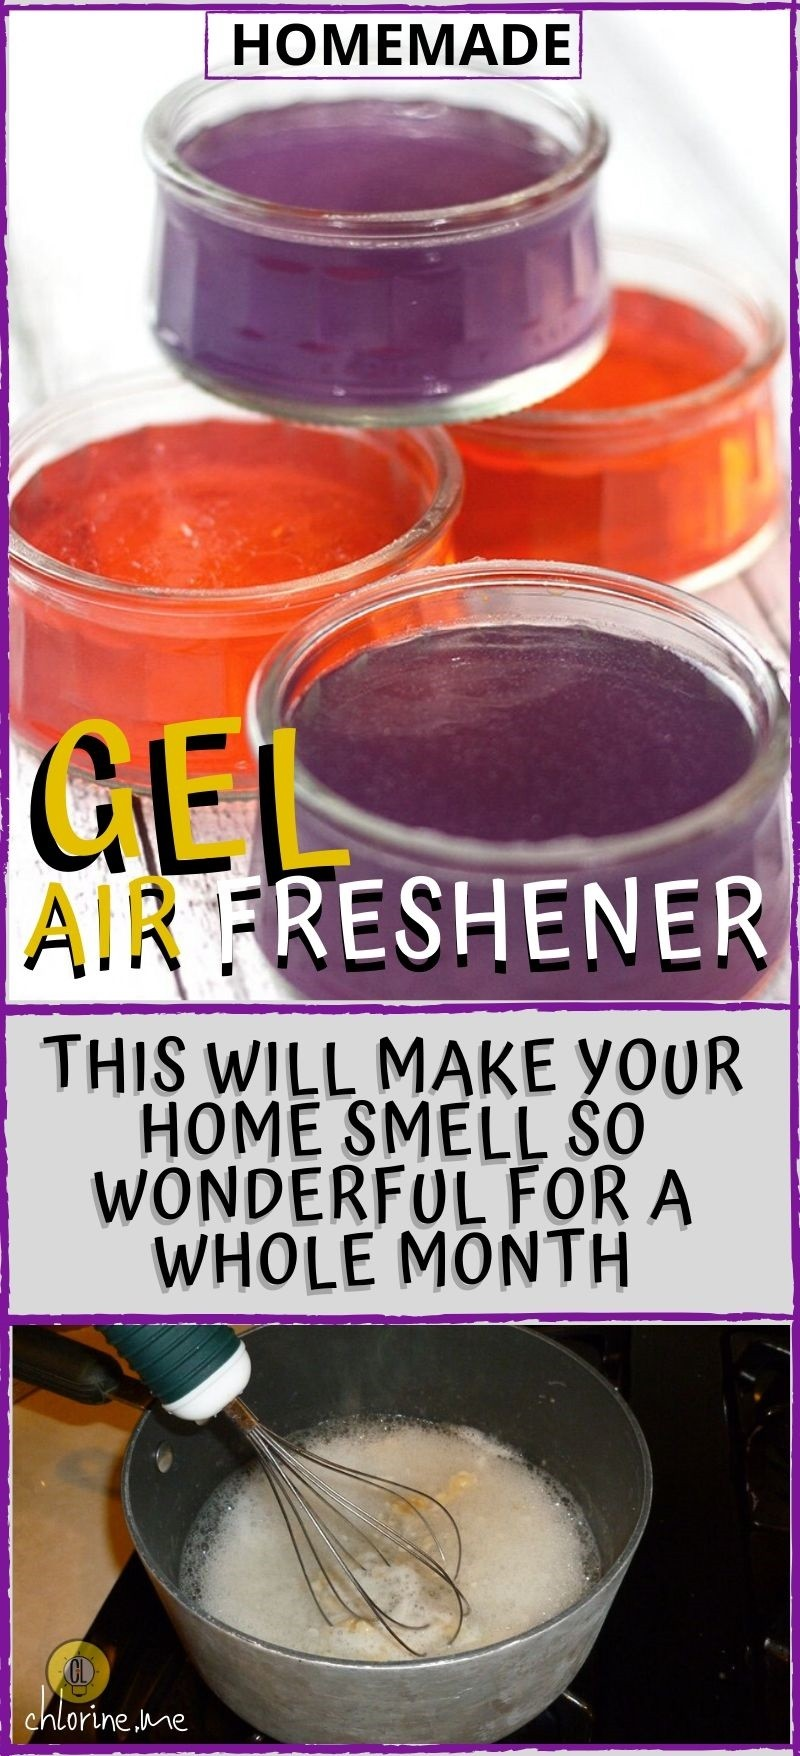 gel air freshener for your home (1)